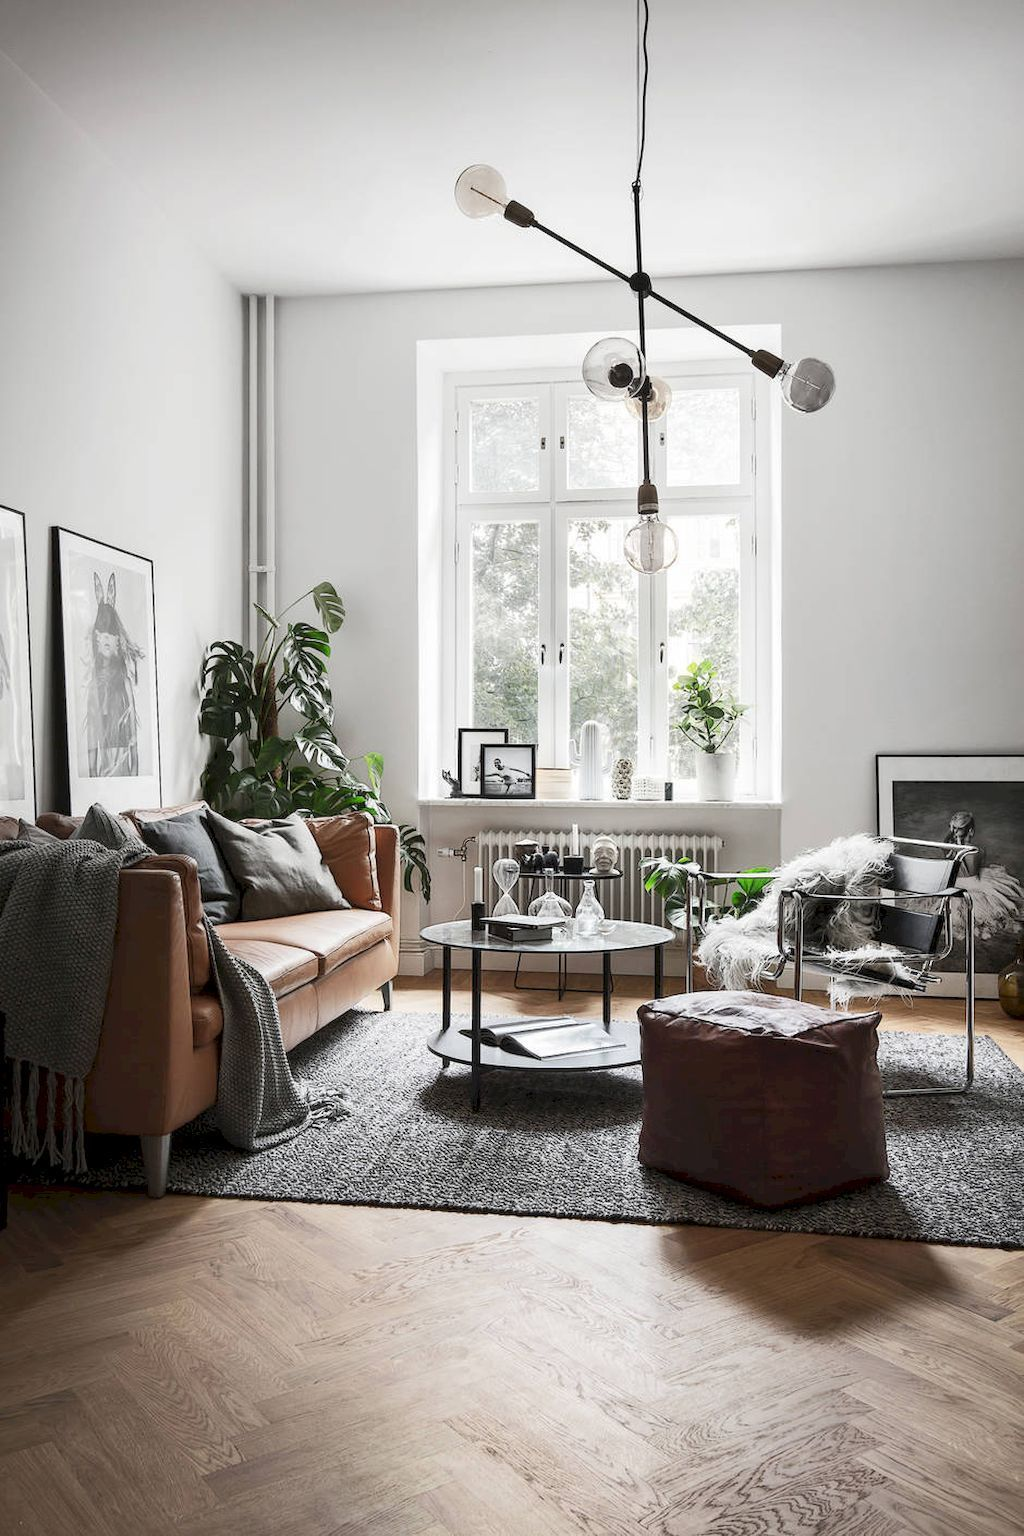 60 Scandinavian Living Room Design Ideas Furniture Interior Livingroom Sc Living Room Scandinavian Living Room Design Modern Rustic Industrial Living Room